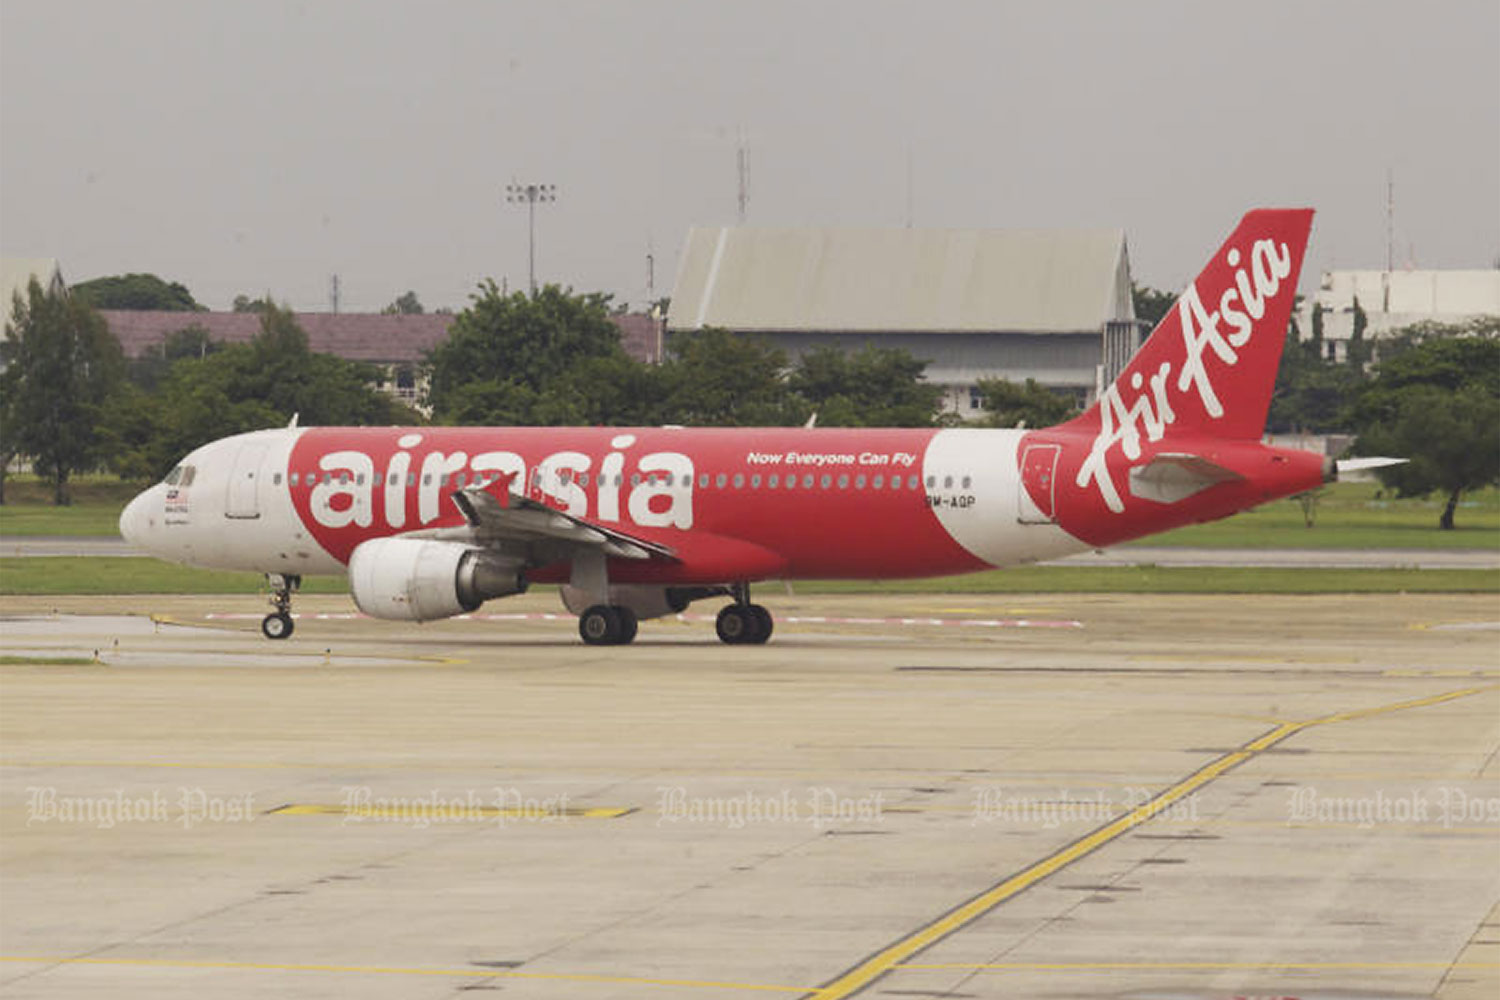 Thai AirAsia will resume operating to all 23 domestic destinations next month.